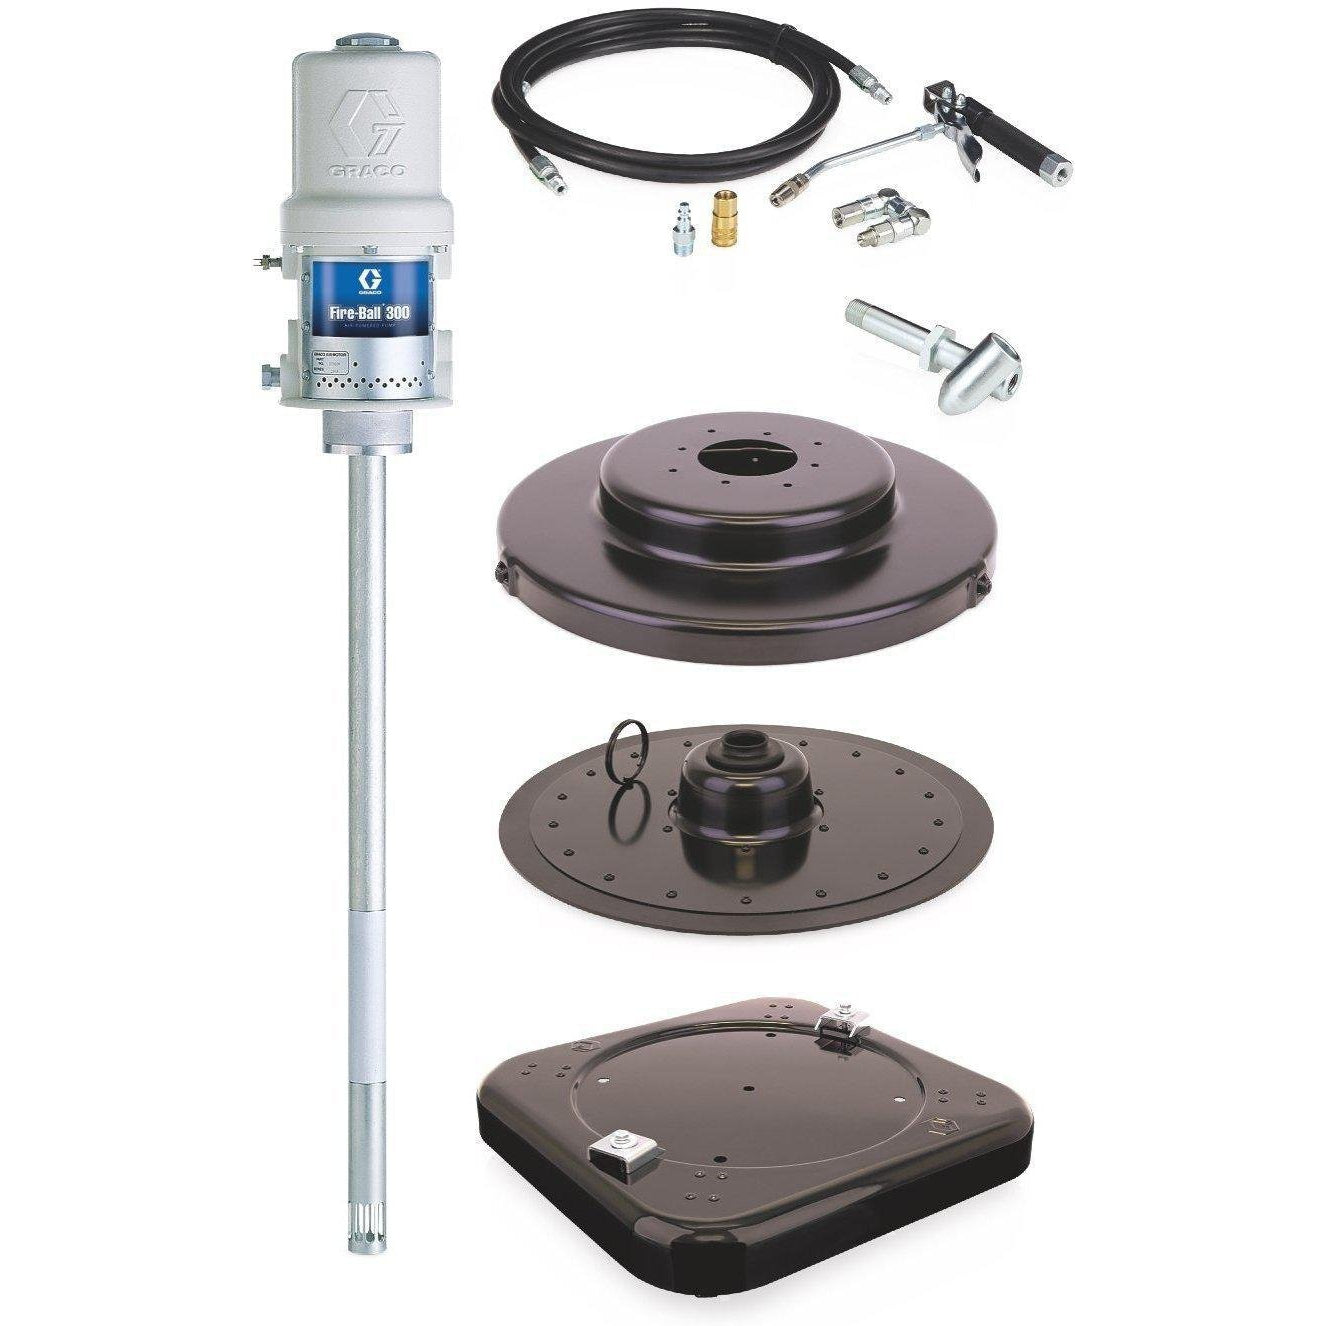 Graco 225006 Fireball 300 Series 50:1 120 Lb. Grease Pump Portable Package With Caster Base - Fireball Equipment Ltd.